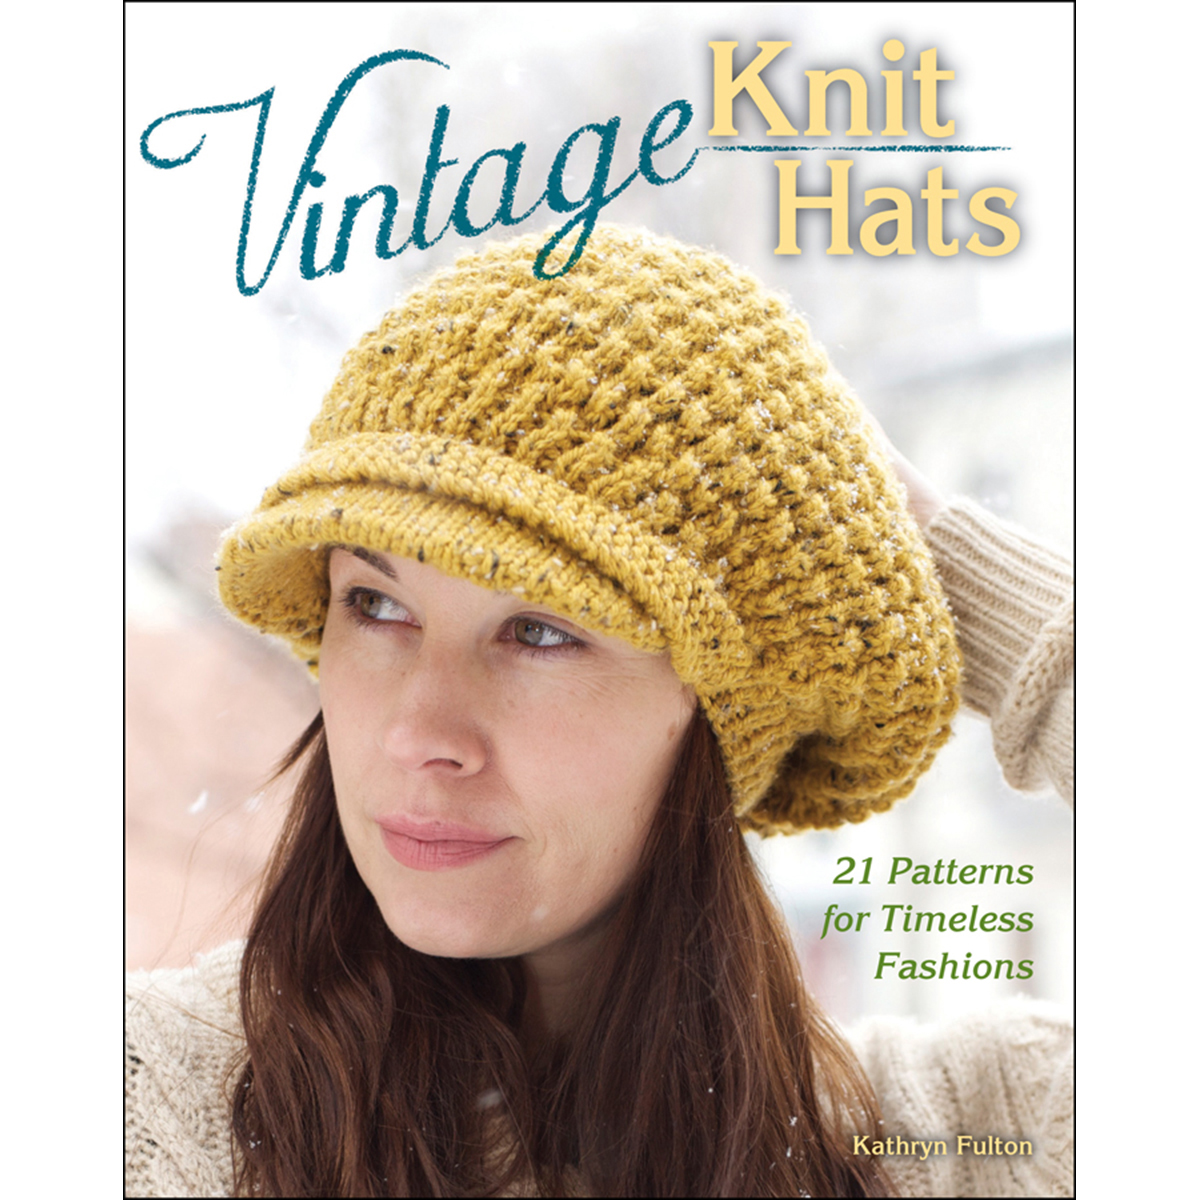 Knitting Pattern Books Hats : Knitting Books Hats, Scarves, Gloves & Socks